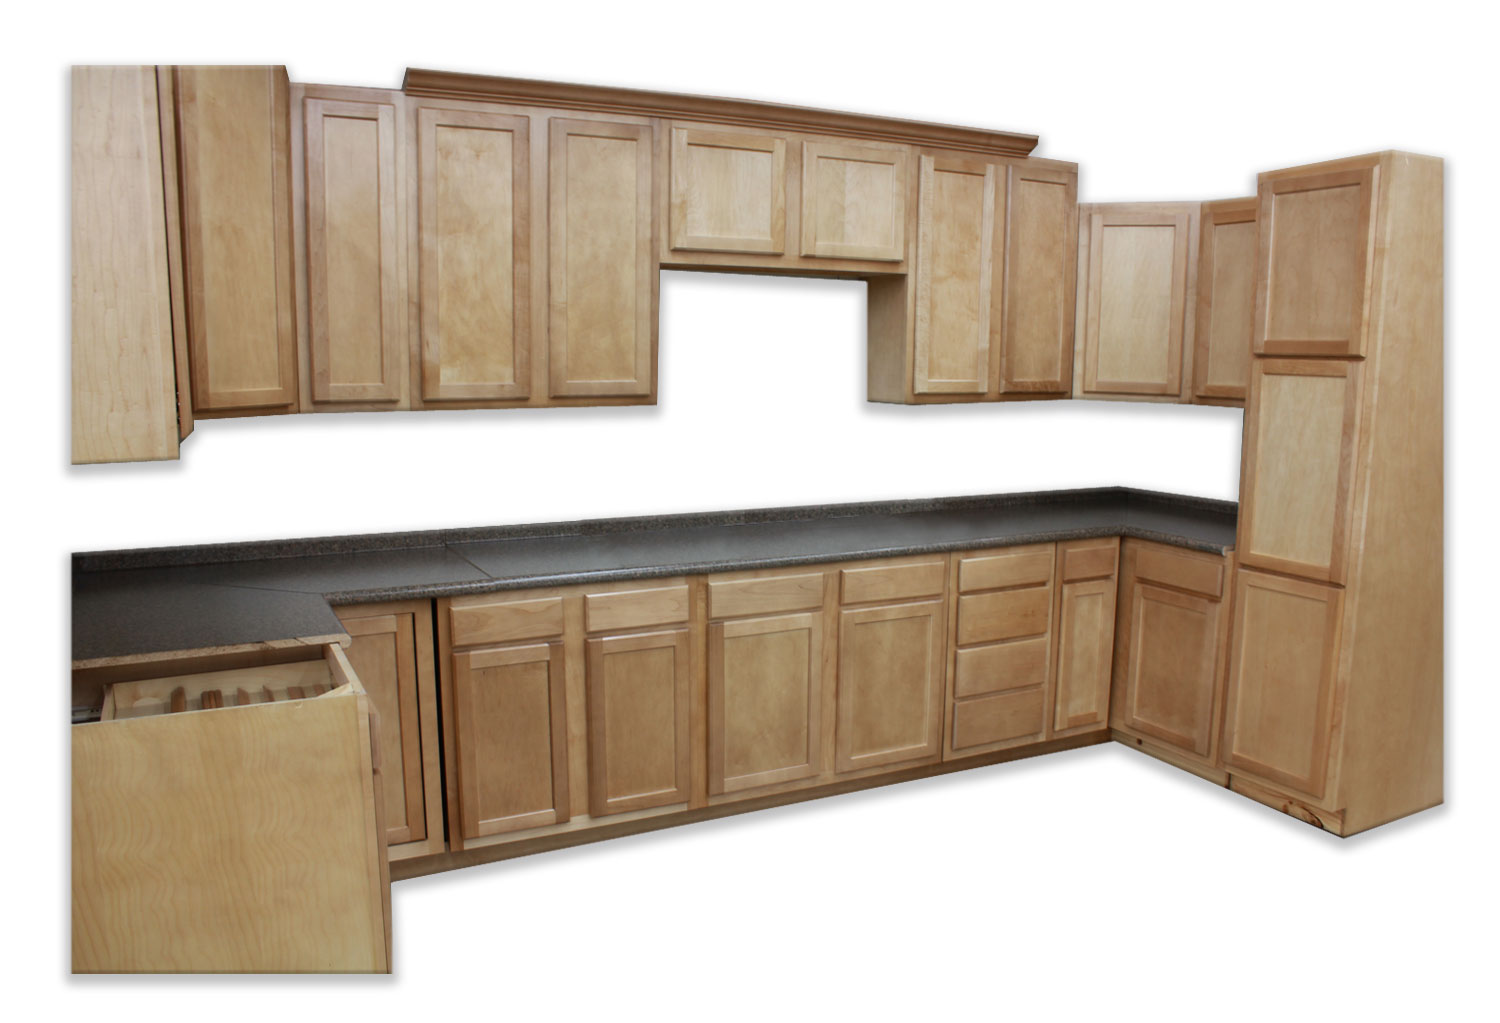 springfield_maple_kitchen_cabinets-1.jpg